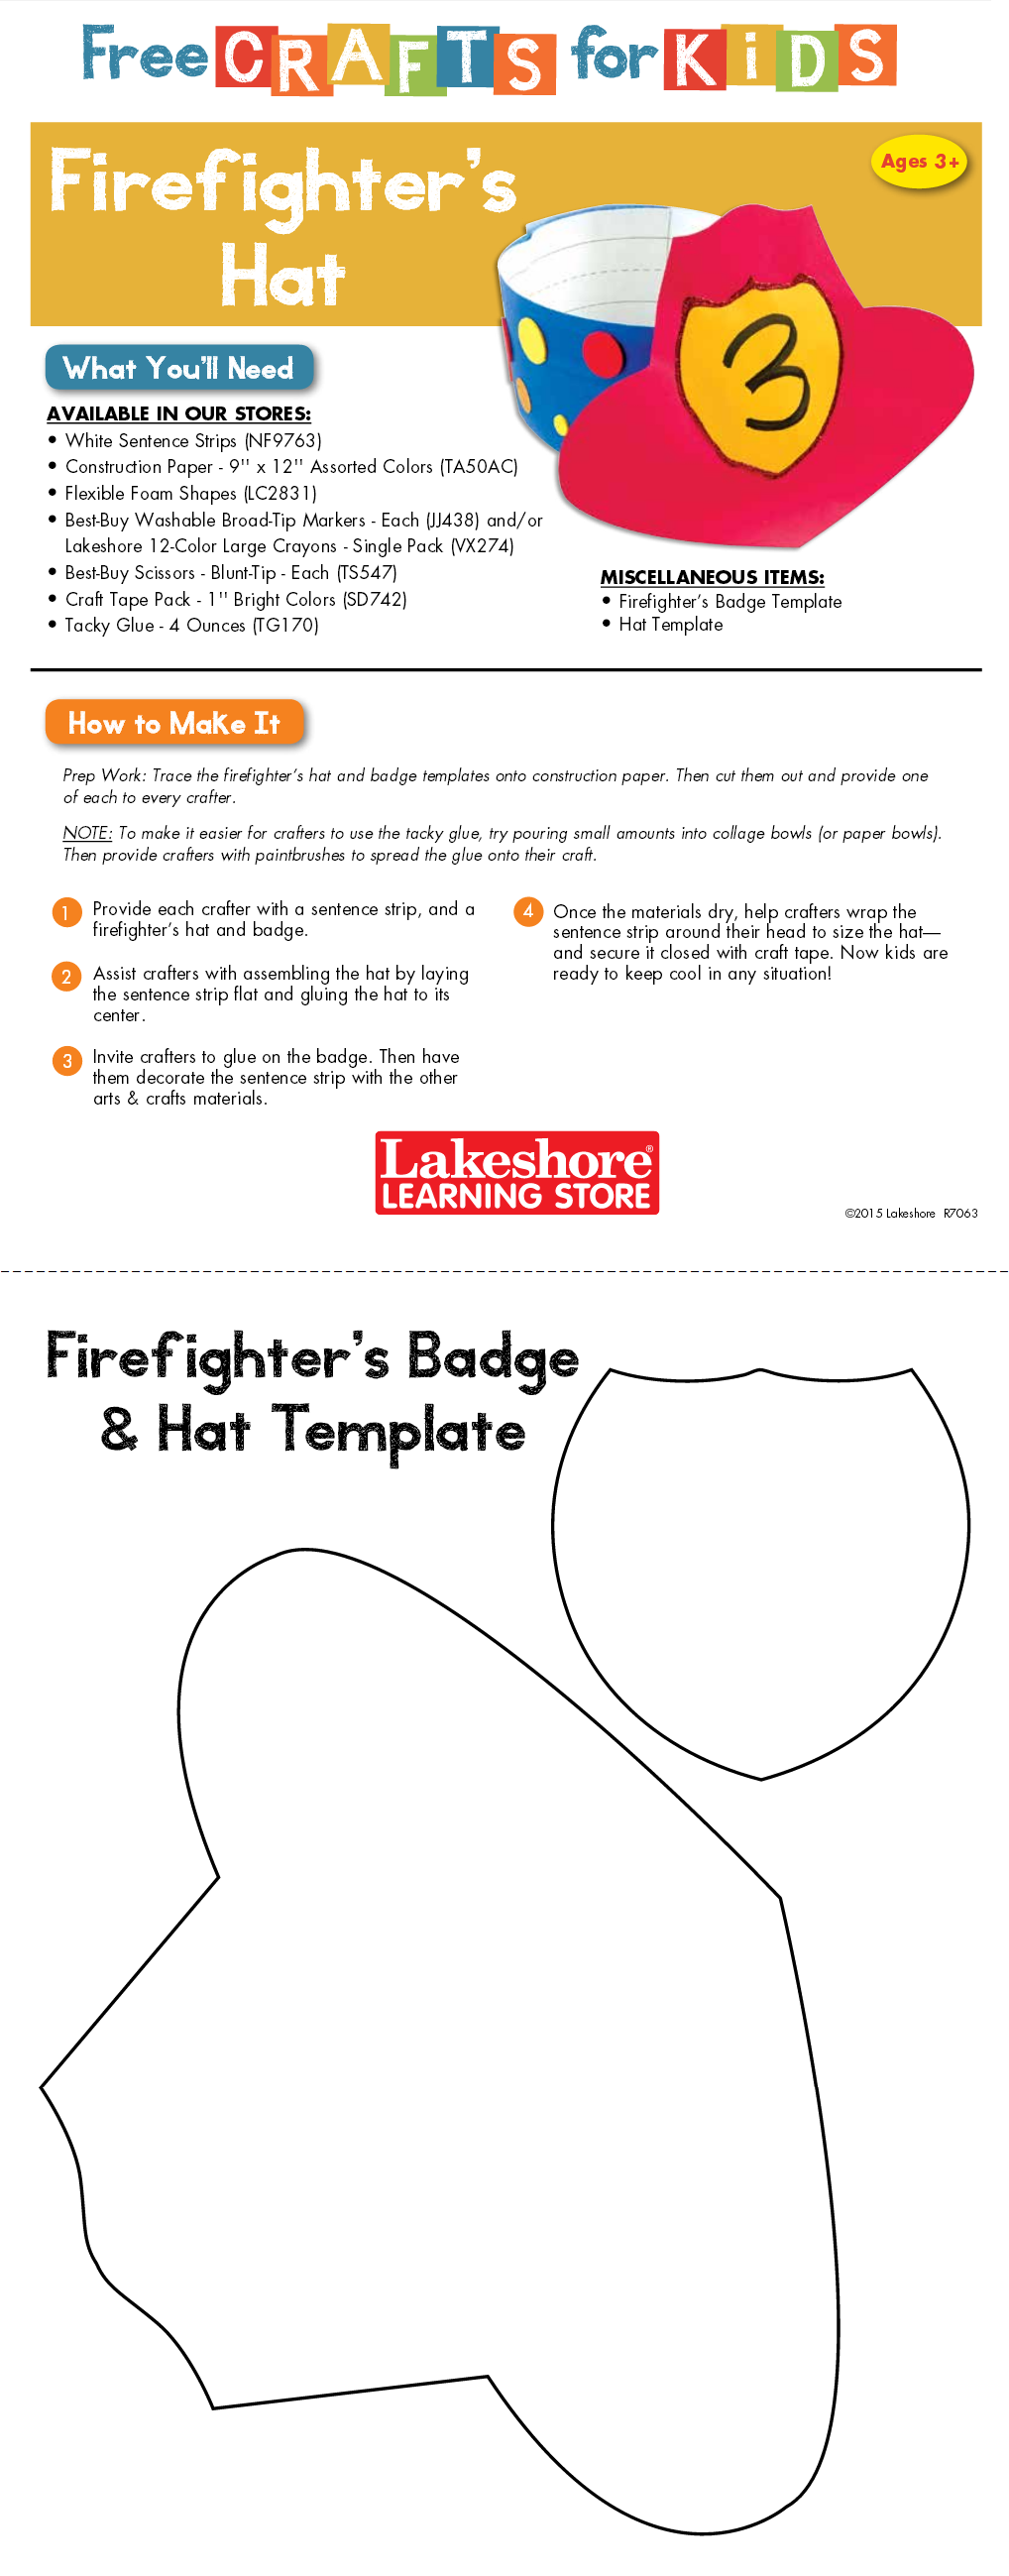 Instruction Sheet From LakeshoreS Free Crafts For Kids Event